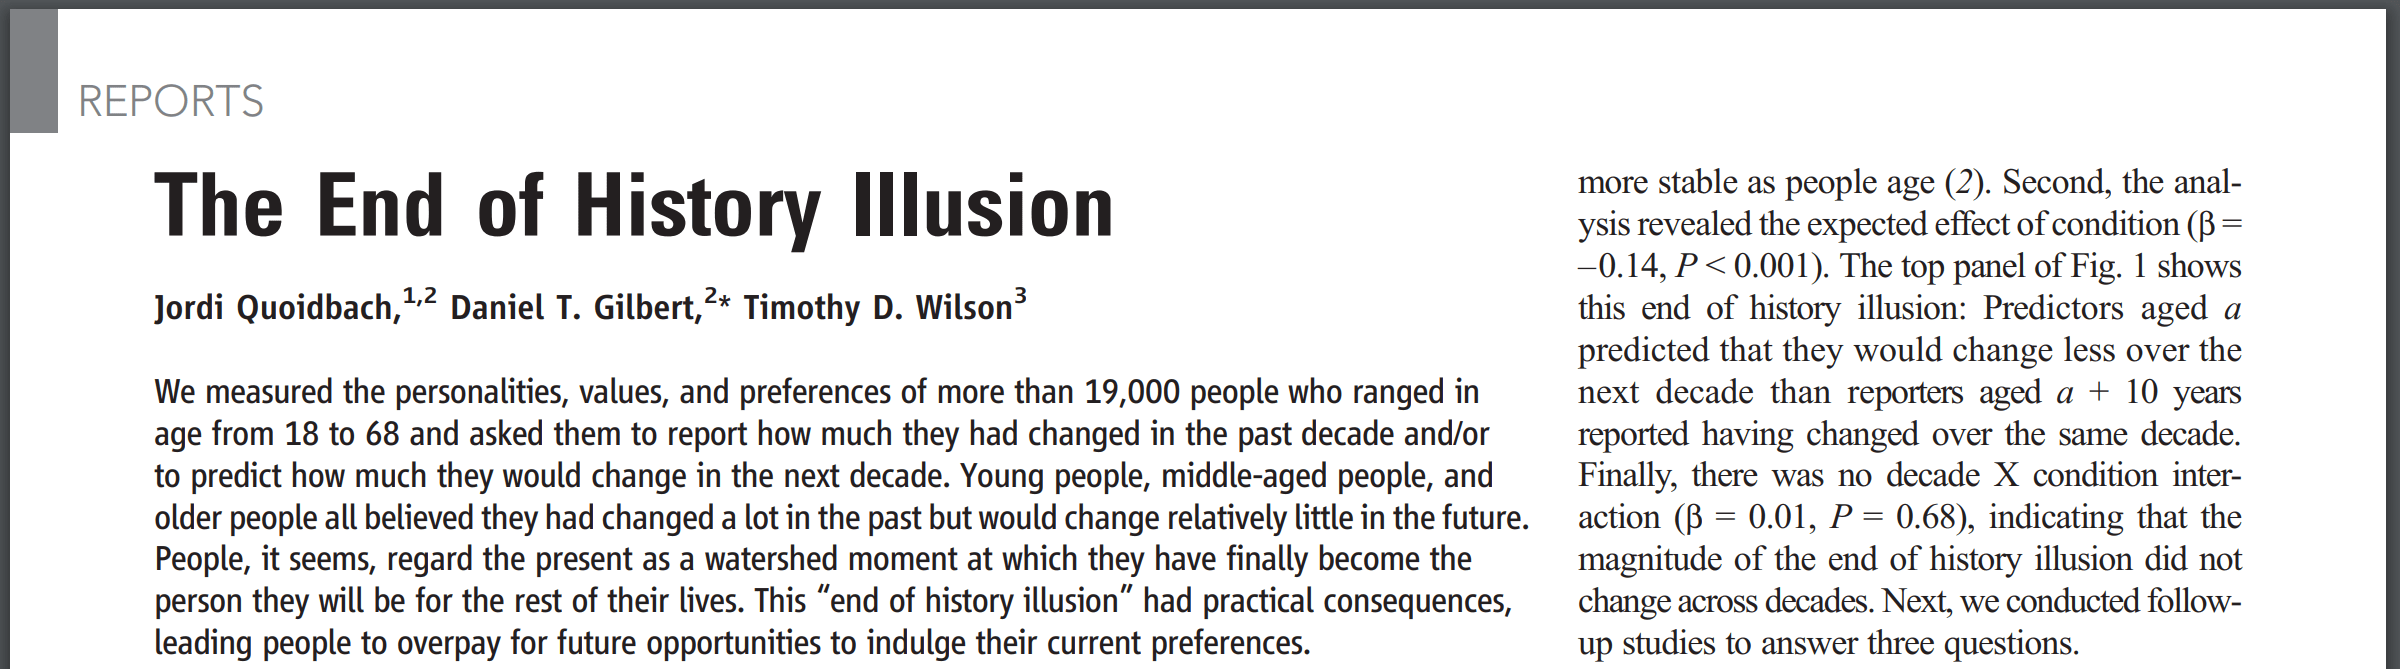 The End of History Illusion